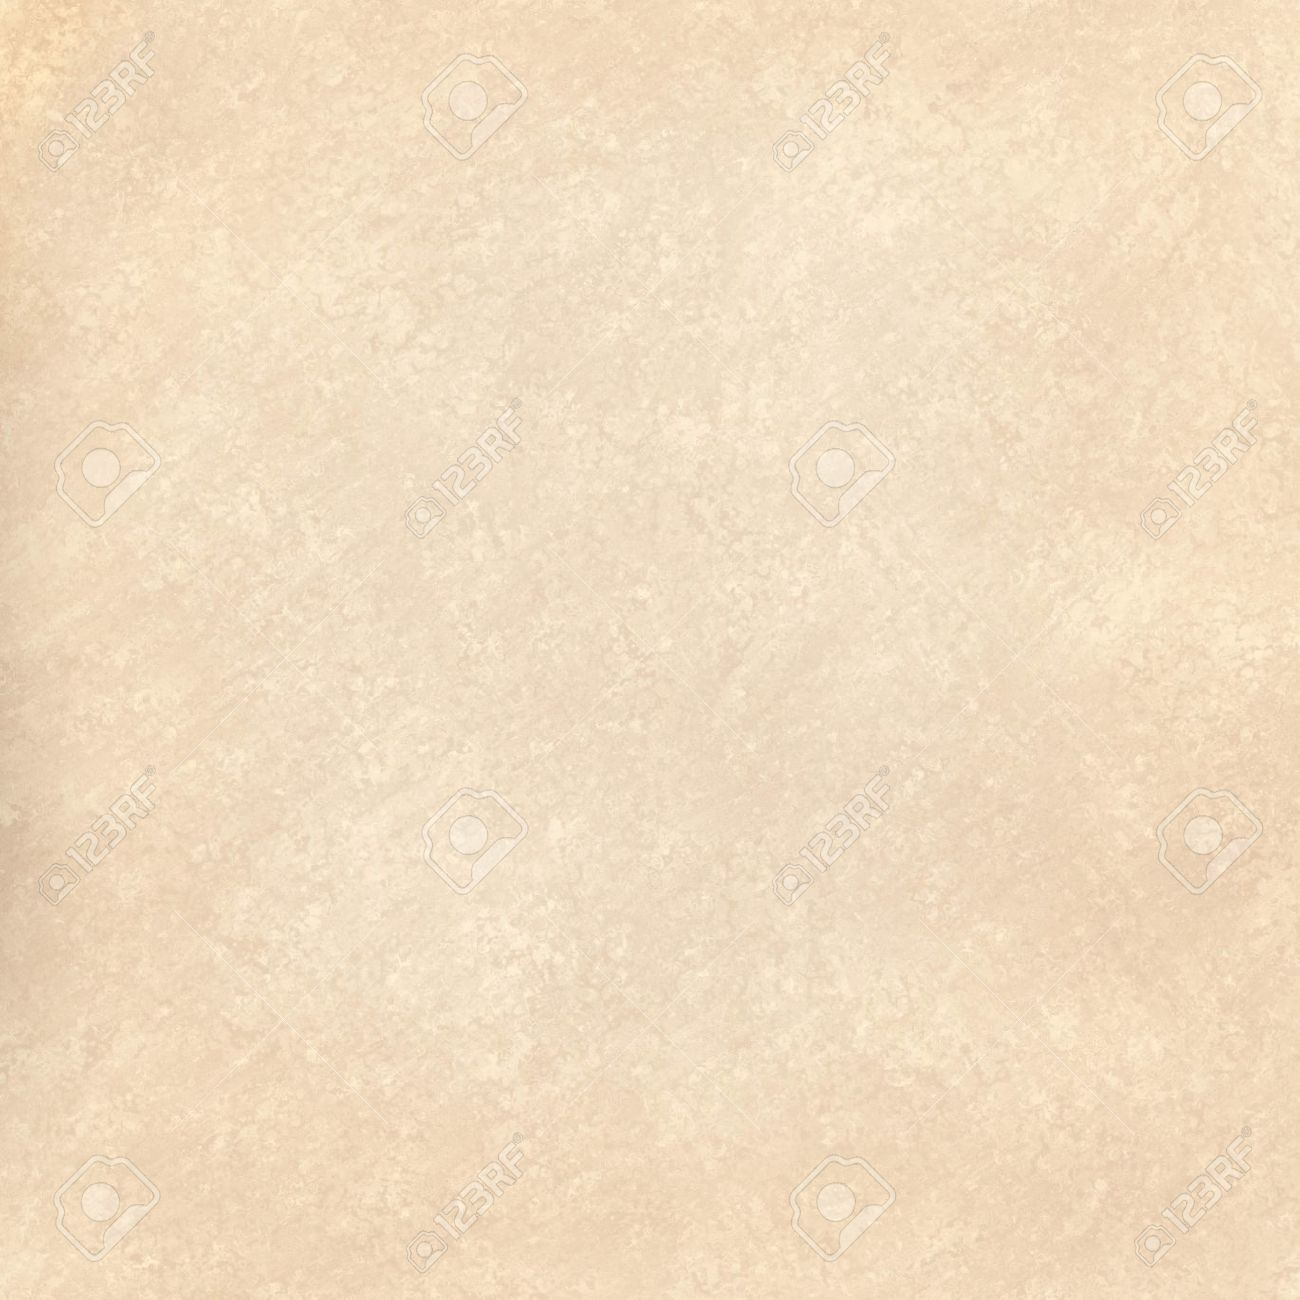 Off White Background Brown Beige Or Tan Color Design Vintage Grunge Texture Stock Photo